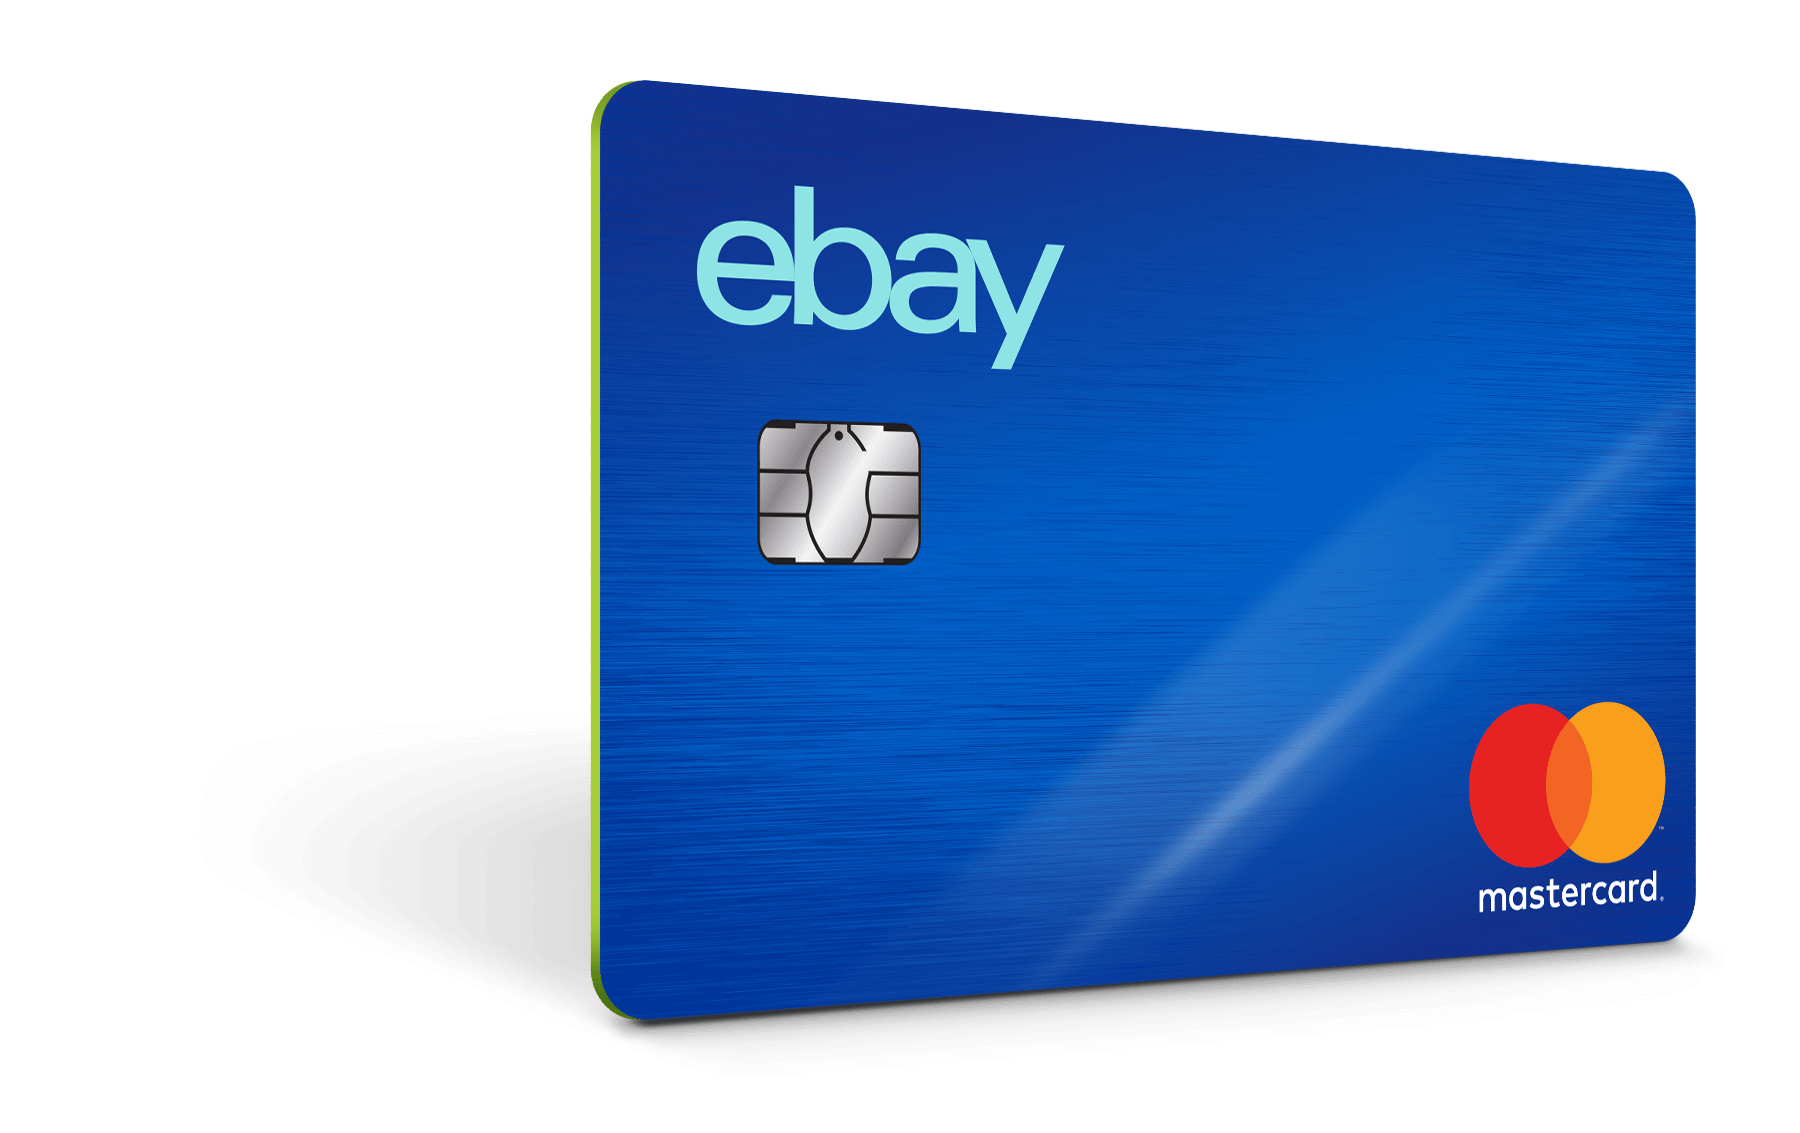 eBay MasterCard is issued by Synchrony Bank. It is a card